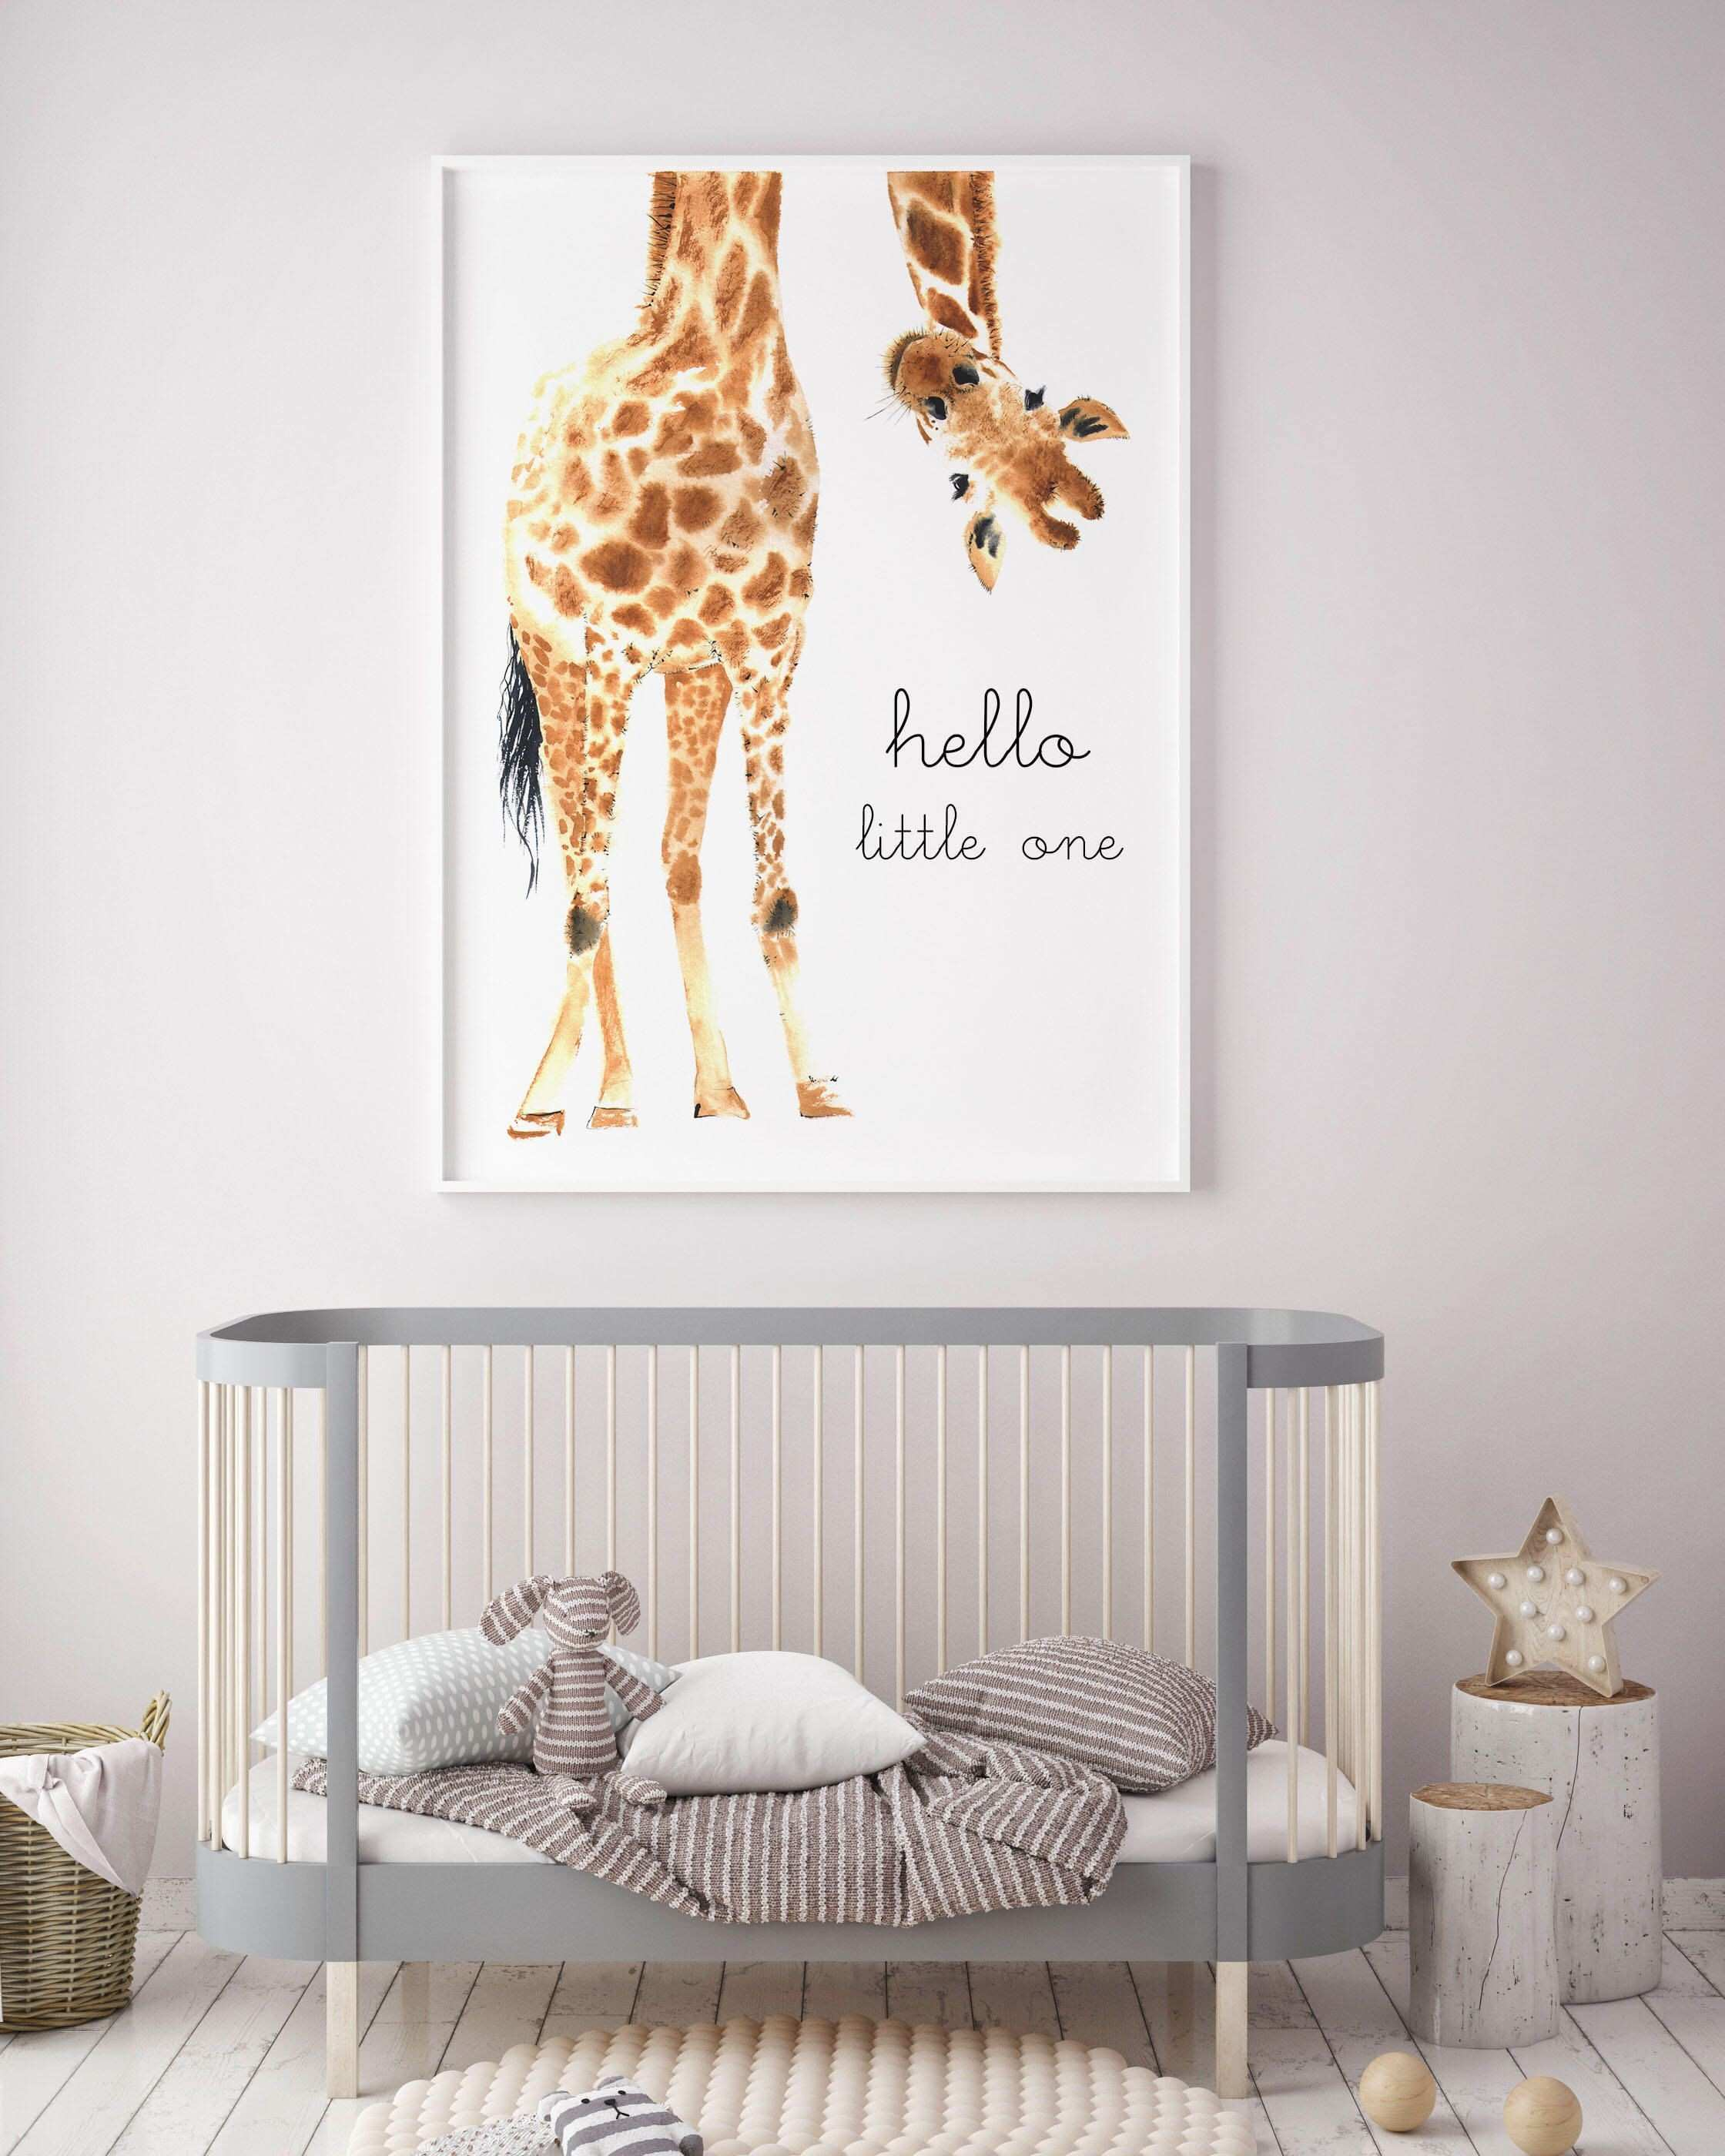 Baby Wall Stickers Fresh now Only Available as A Printed Version See Link In Description to